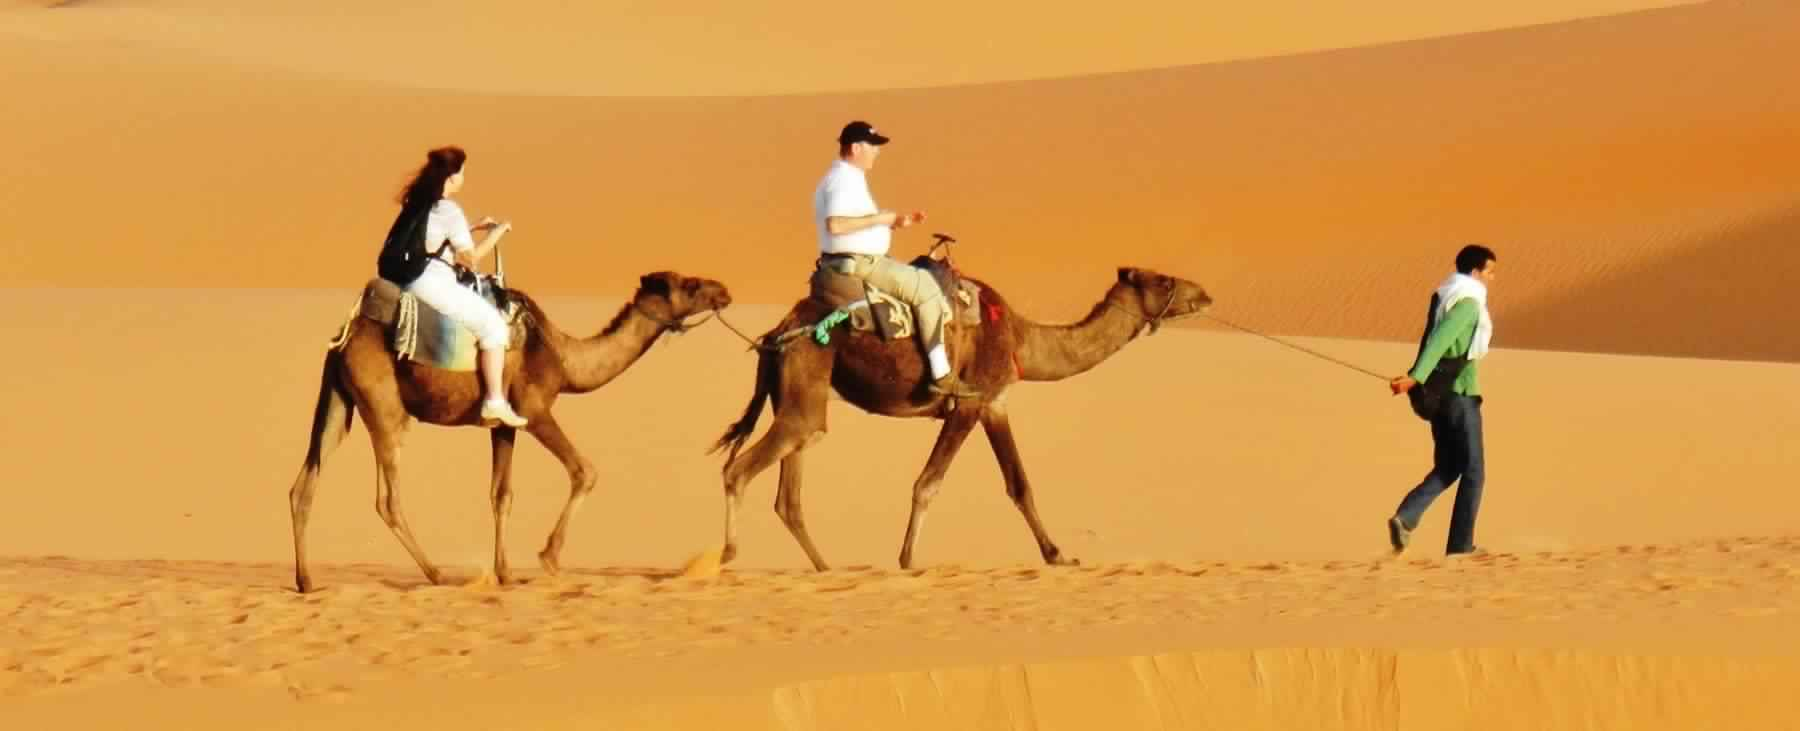 Dubai Desert Safari Tour- Camel Riding & Dune Bashing